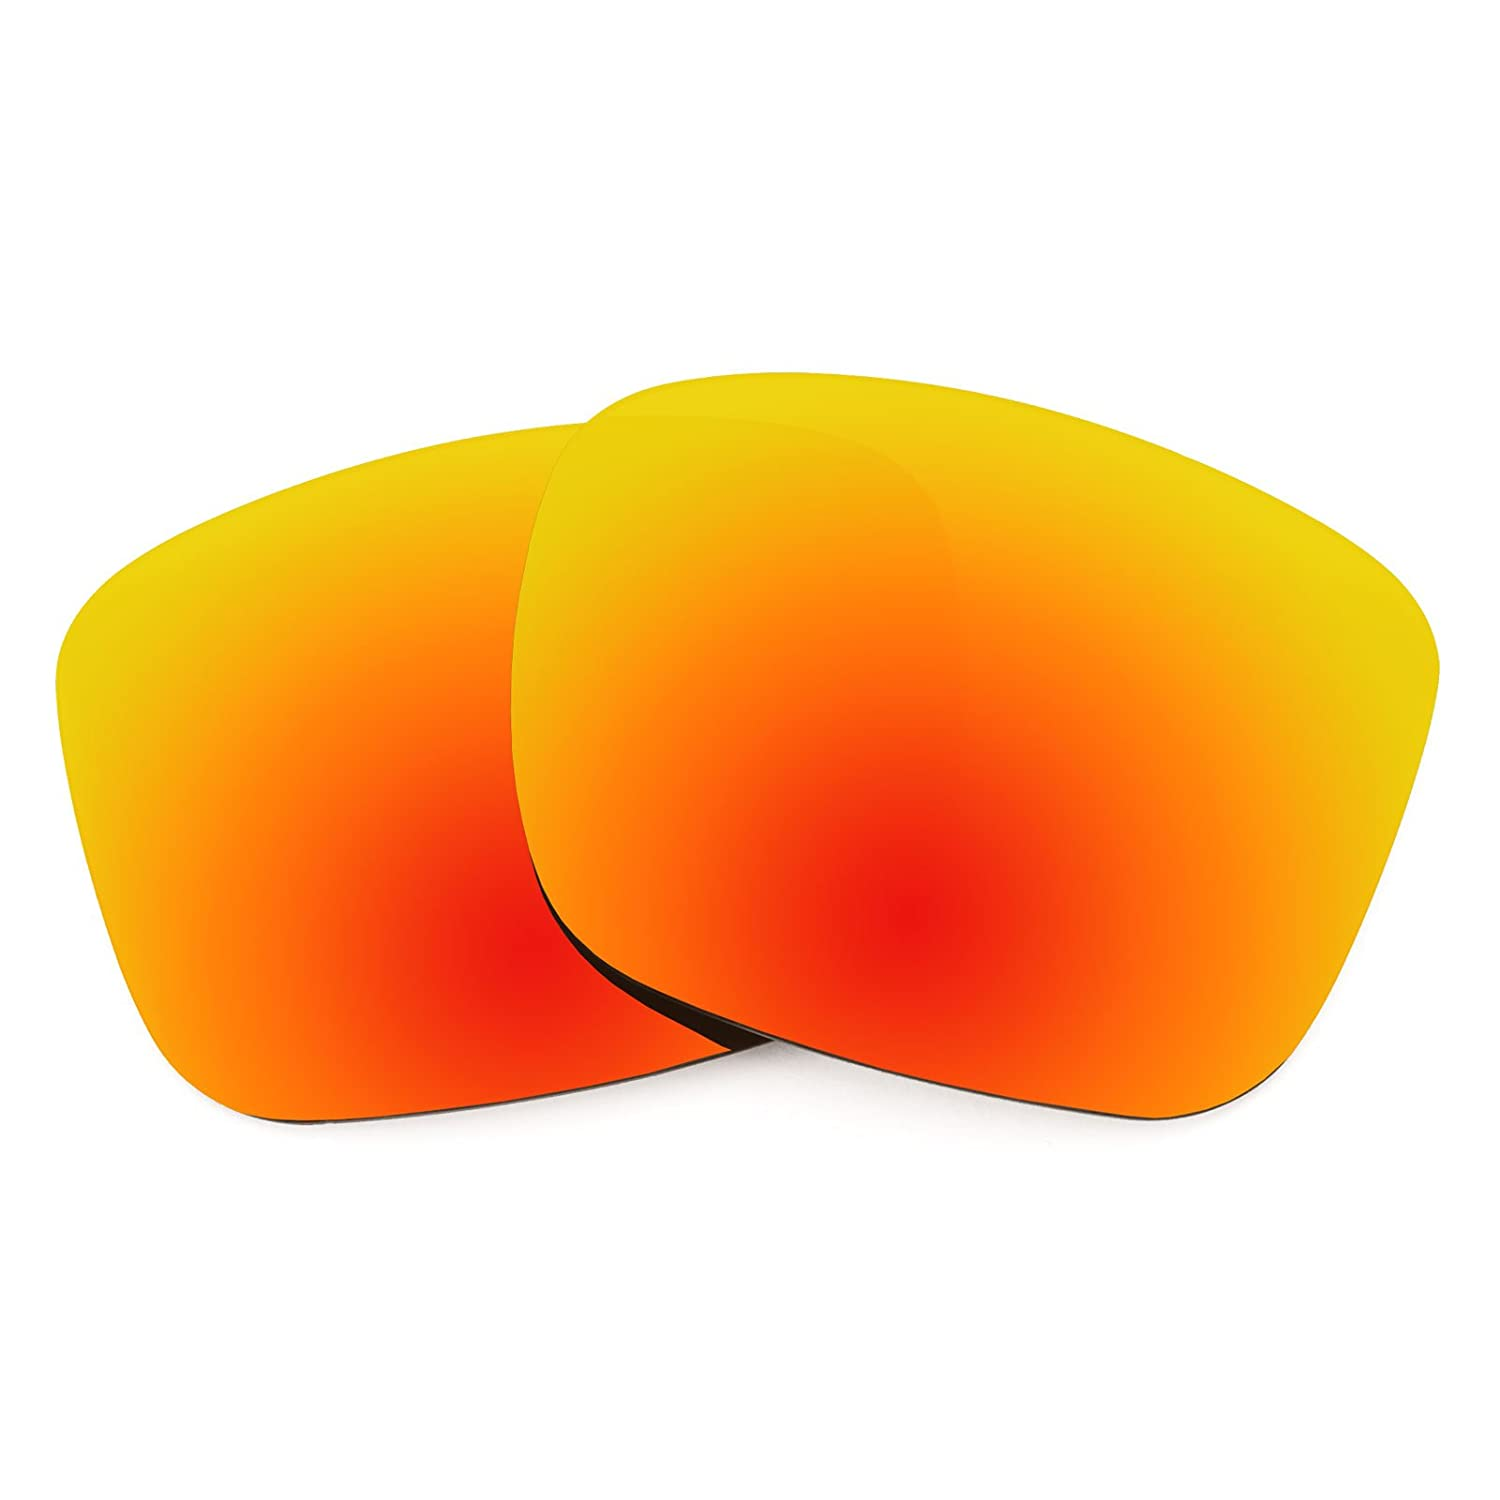 59f67e93c48 Revant Polarized Replacement Lenses for Spy Optic Discord Fire Red  MirrorShield®  Amazon.ca  Sports   Outdoors